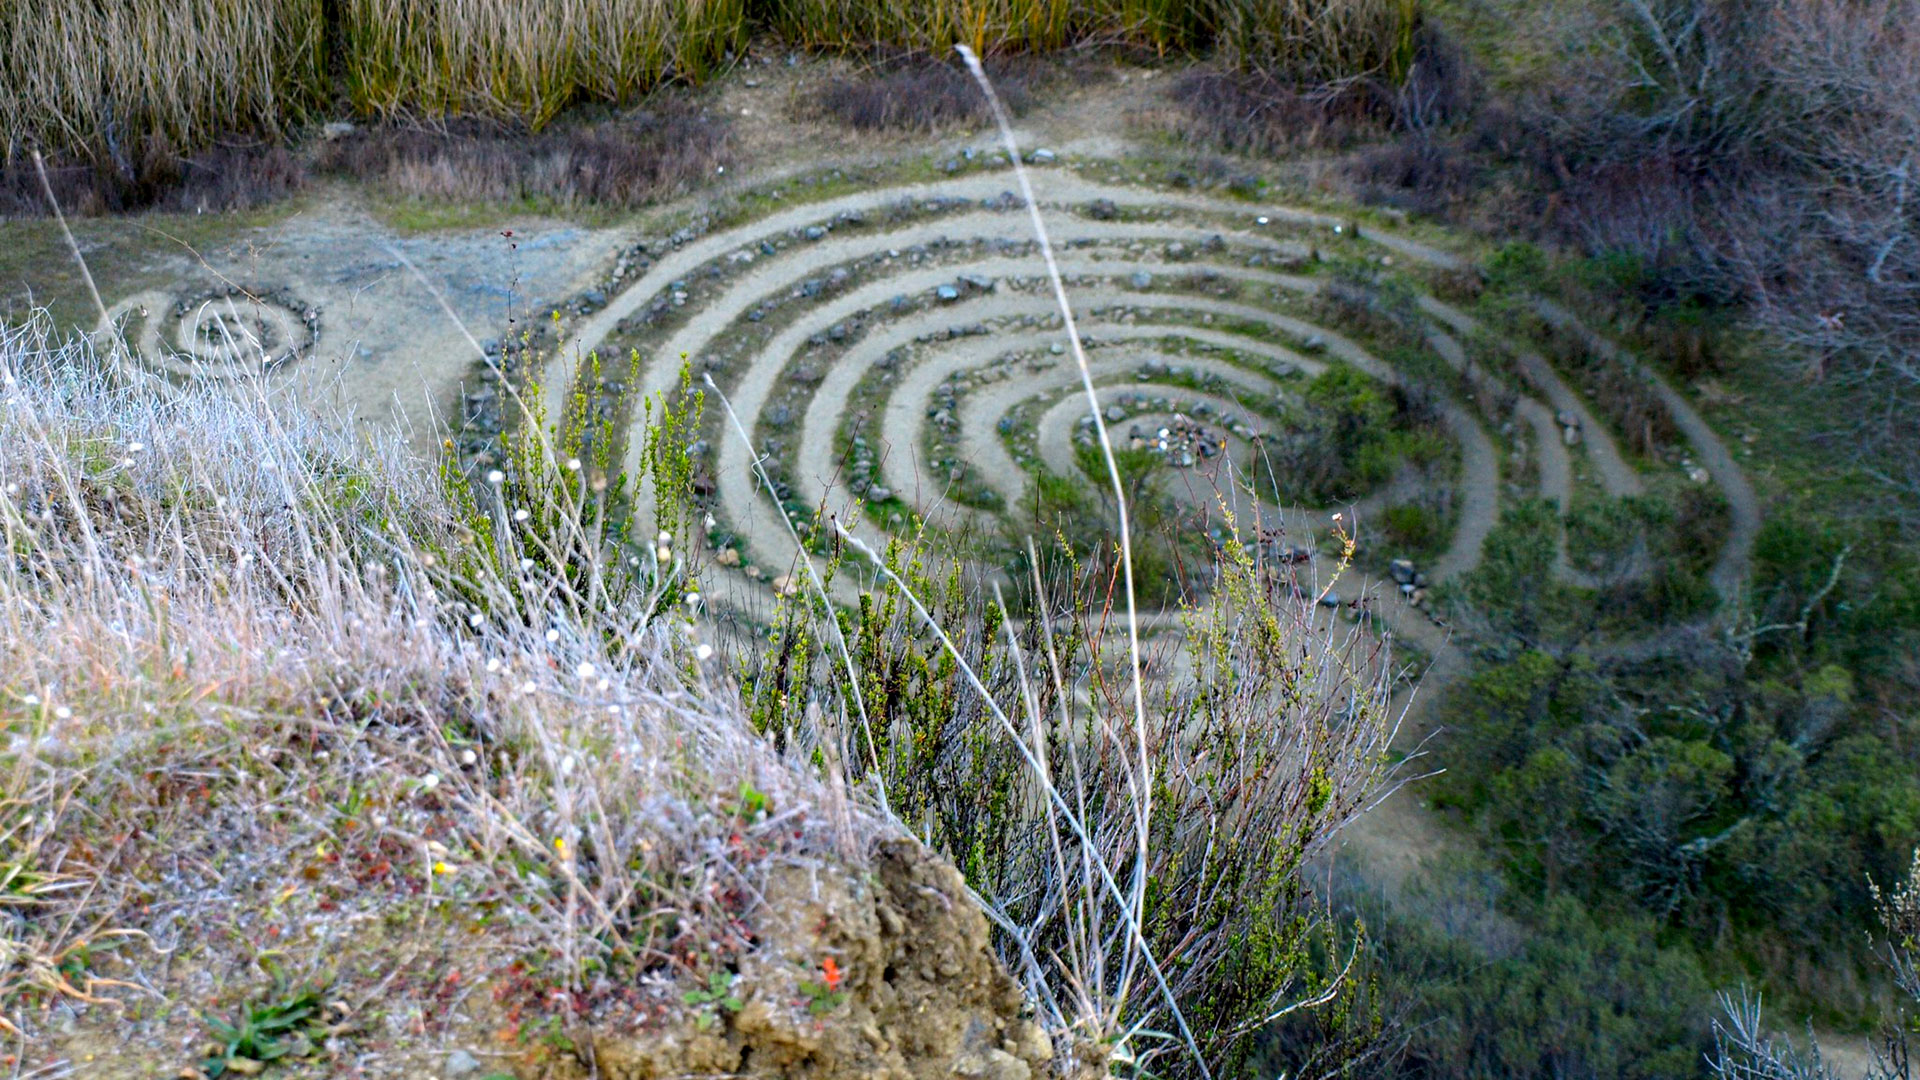 A labyrinth made of grass and stones sits at the bottom of a quarry in Sibley Volcanic Regional Preserve.